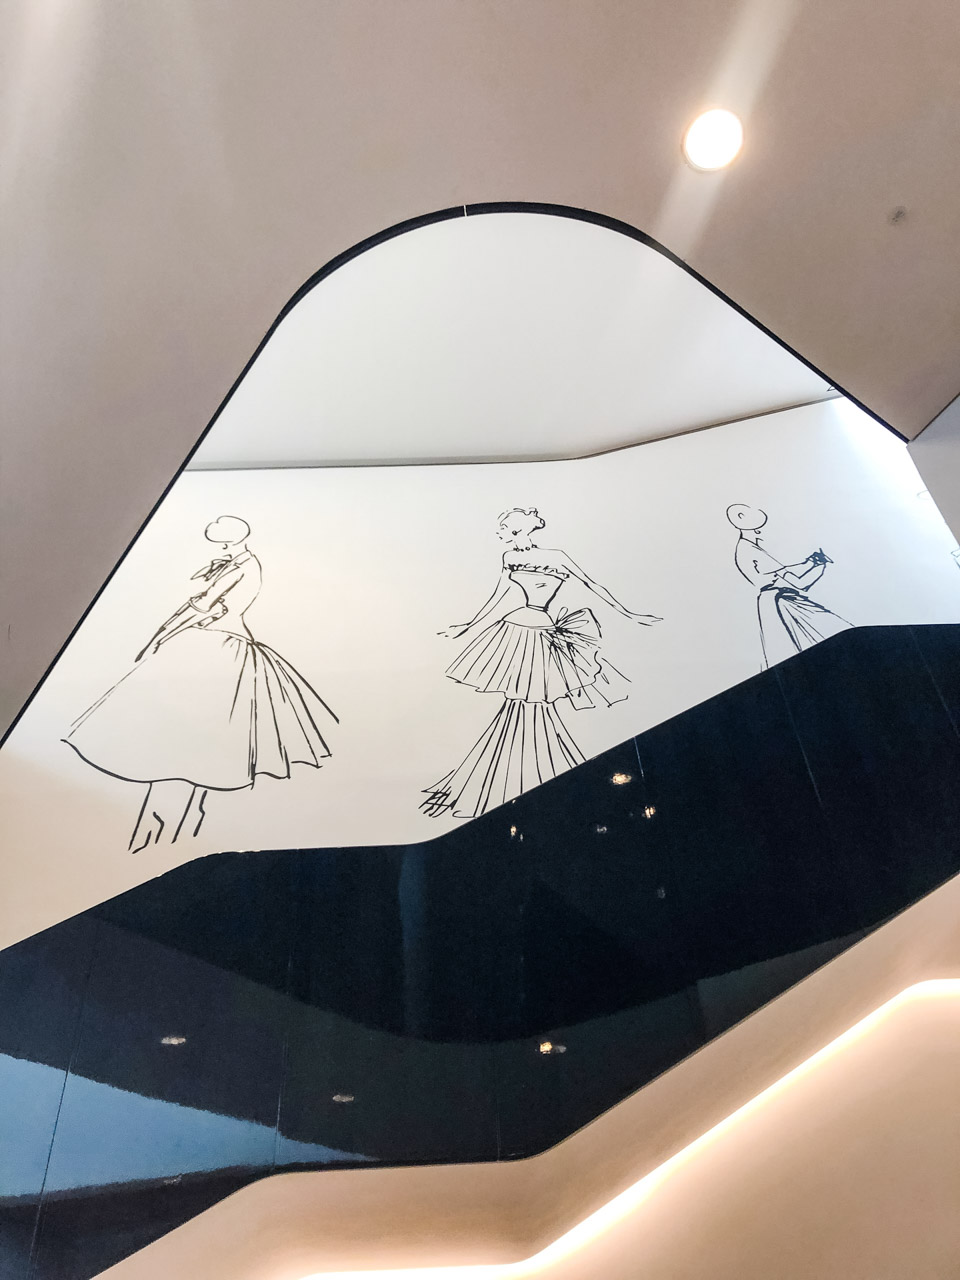 Sketches at the Christian Dior: Designer of Dreams exhibition at the Victoria and Albert Museum in London